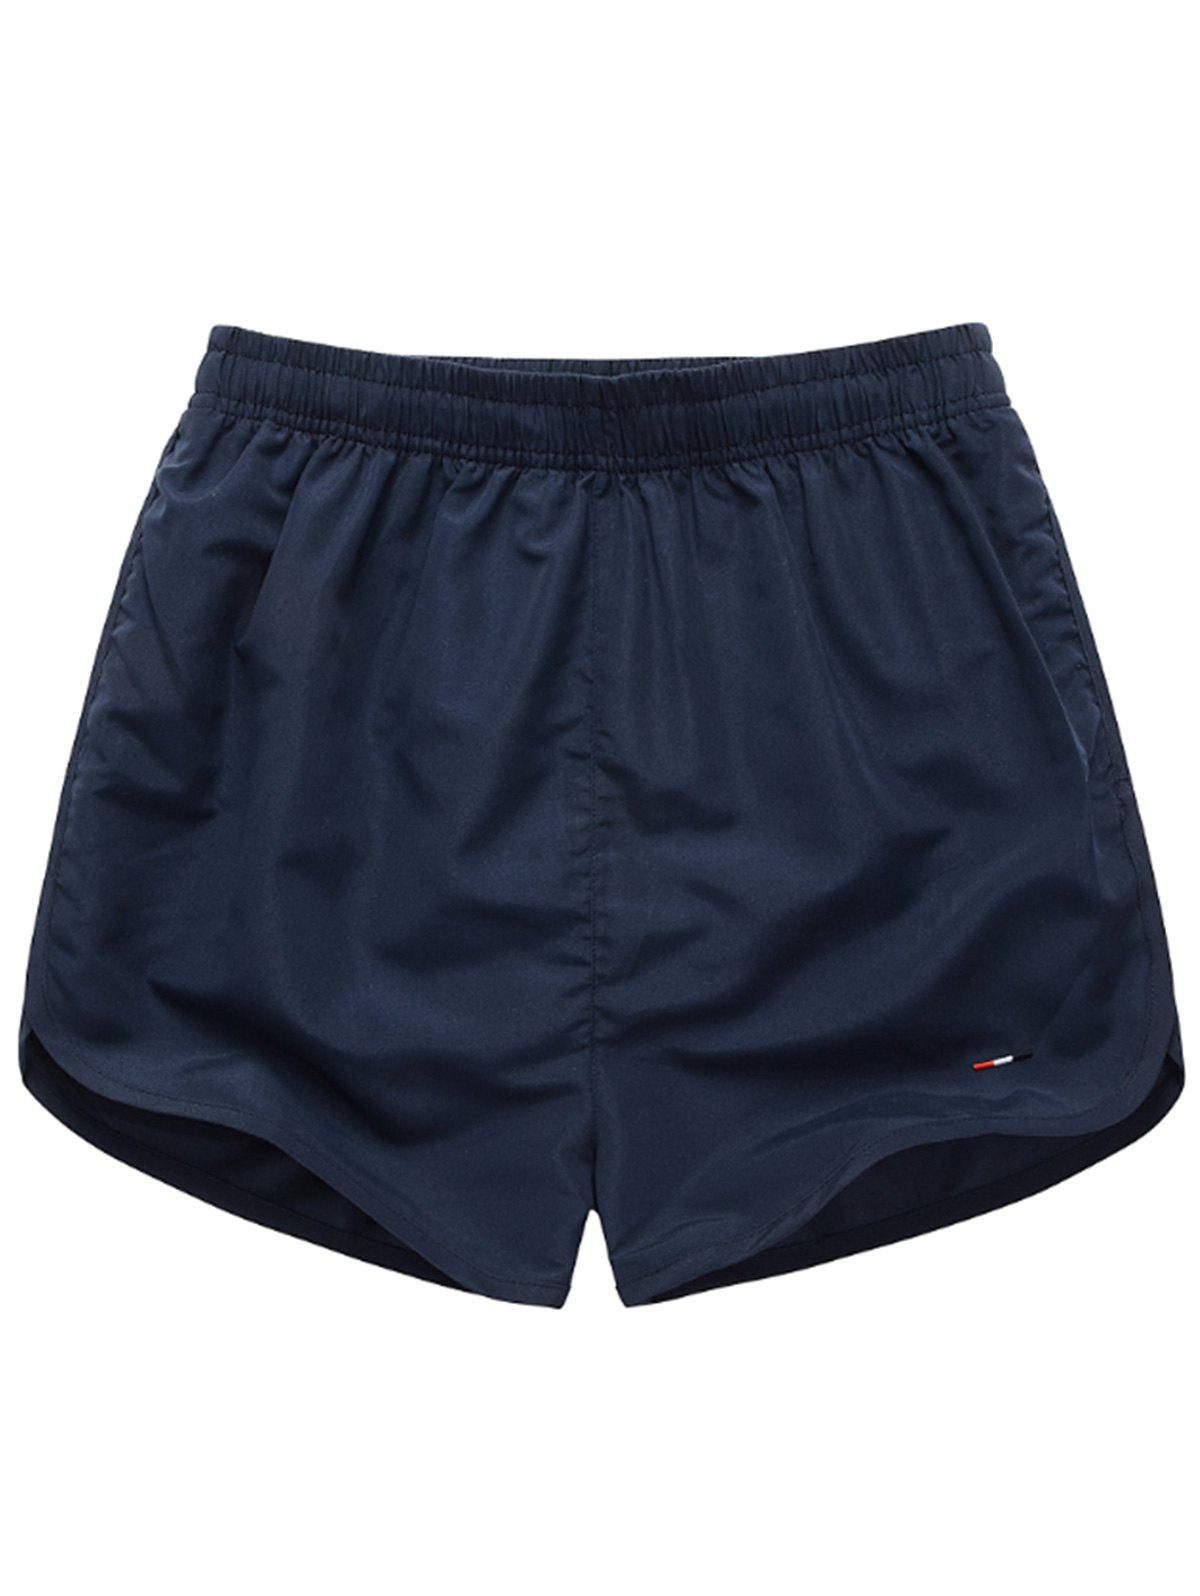 Discount Dolphin Hem Mesh Lined Beach Shorts